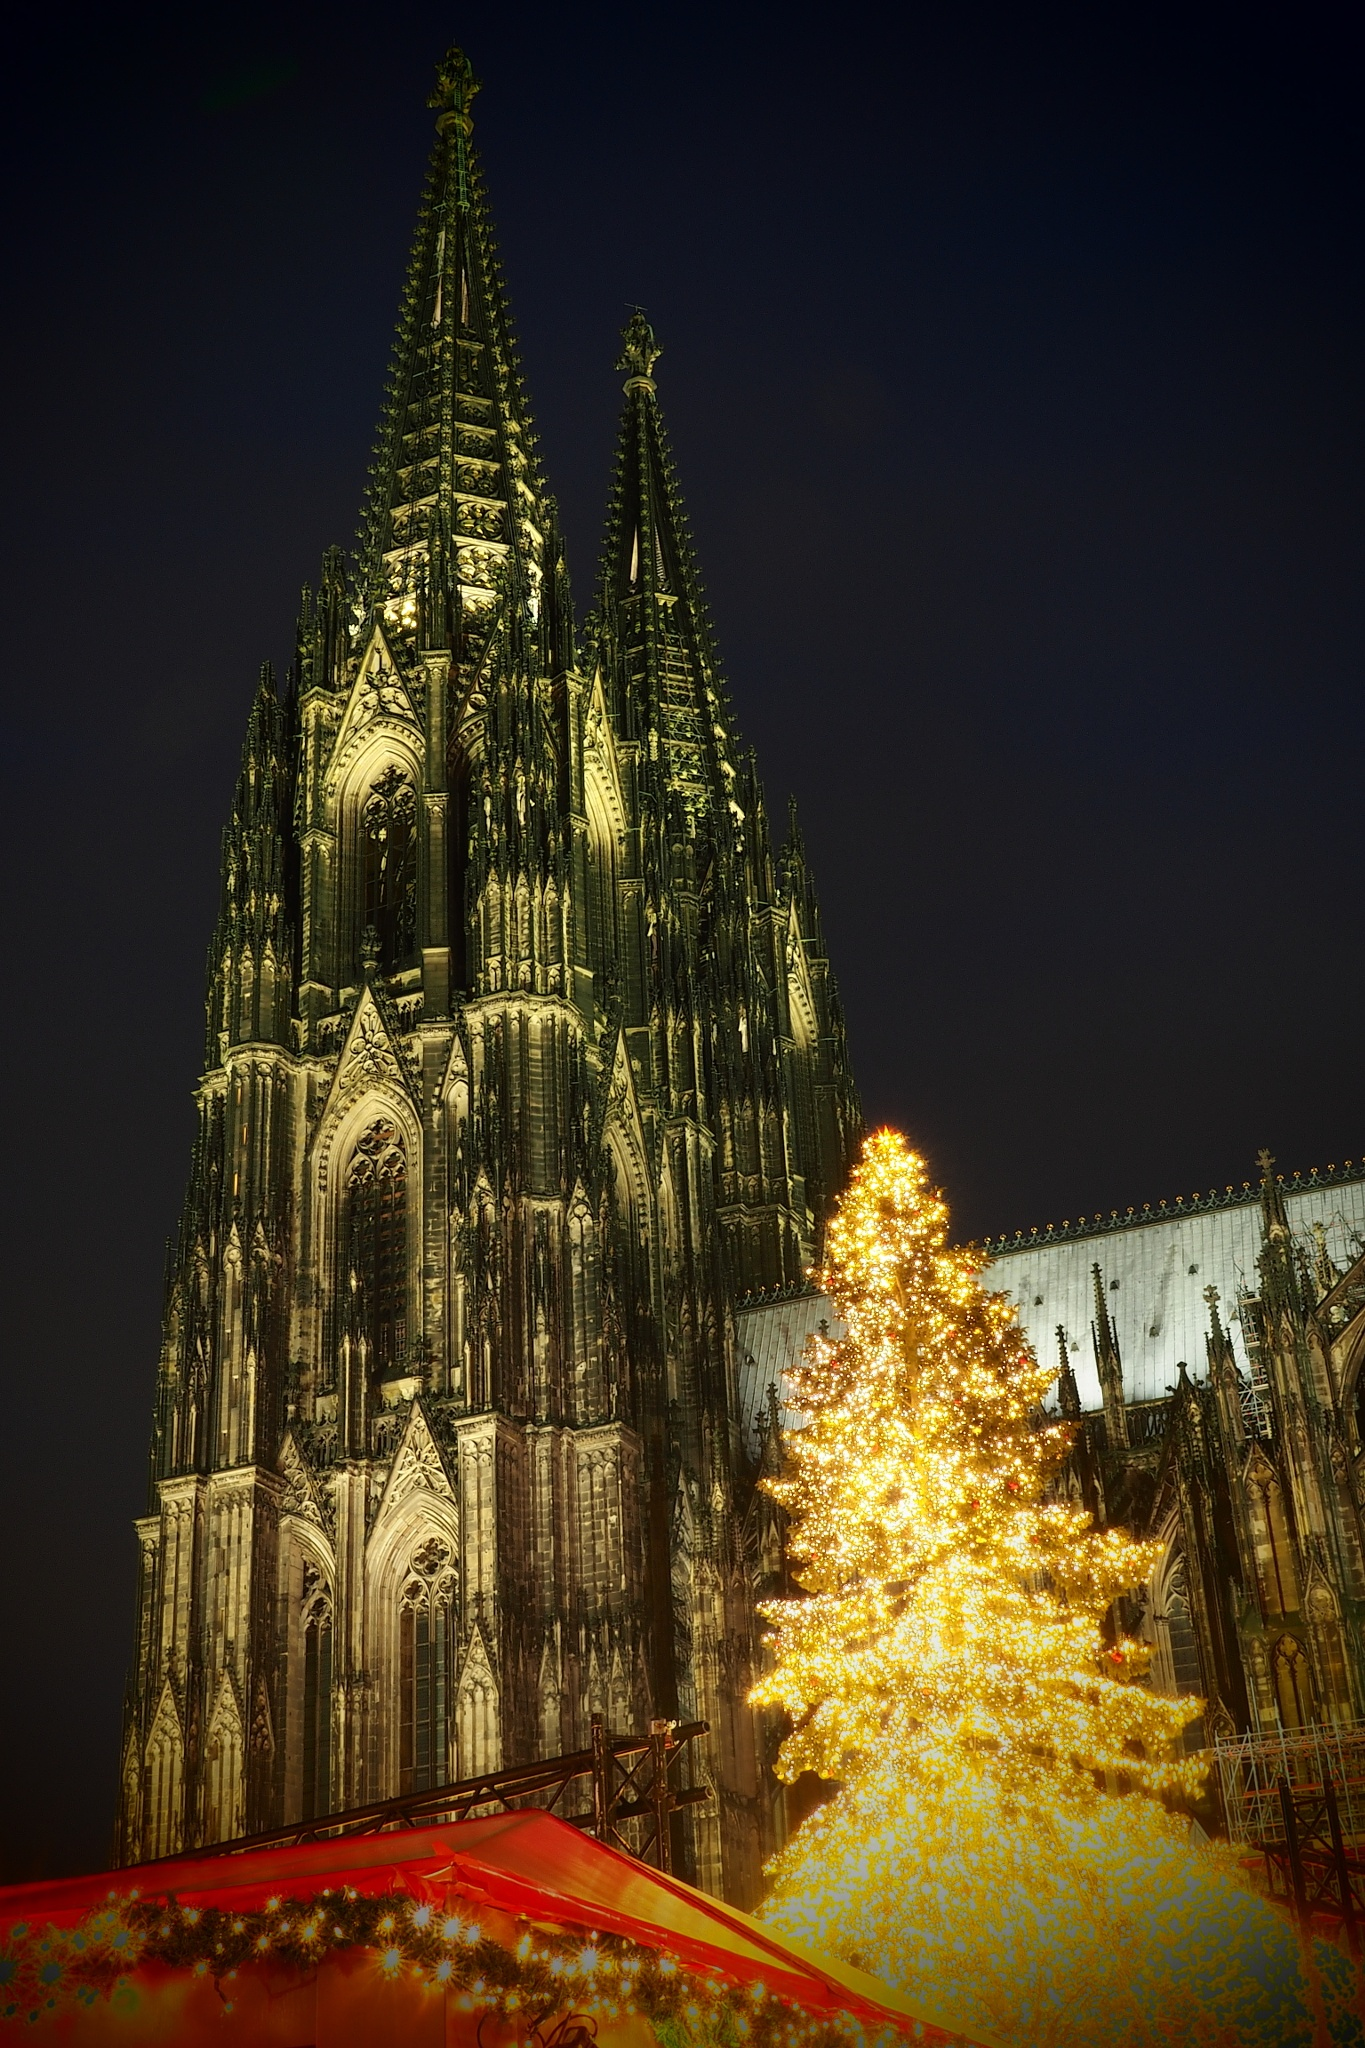 Cologne Cathedral, Germany by Brigitte Bohlscheid